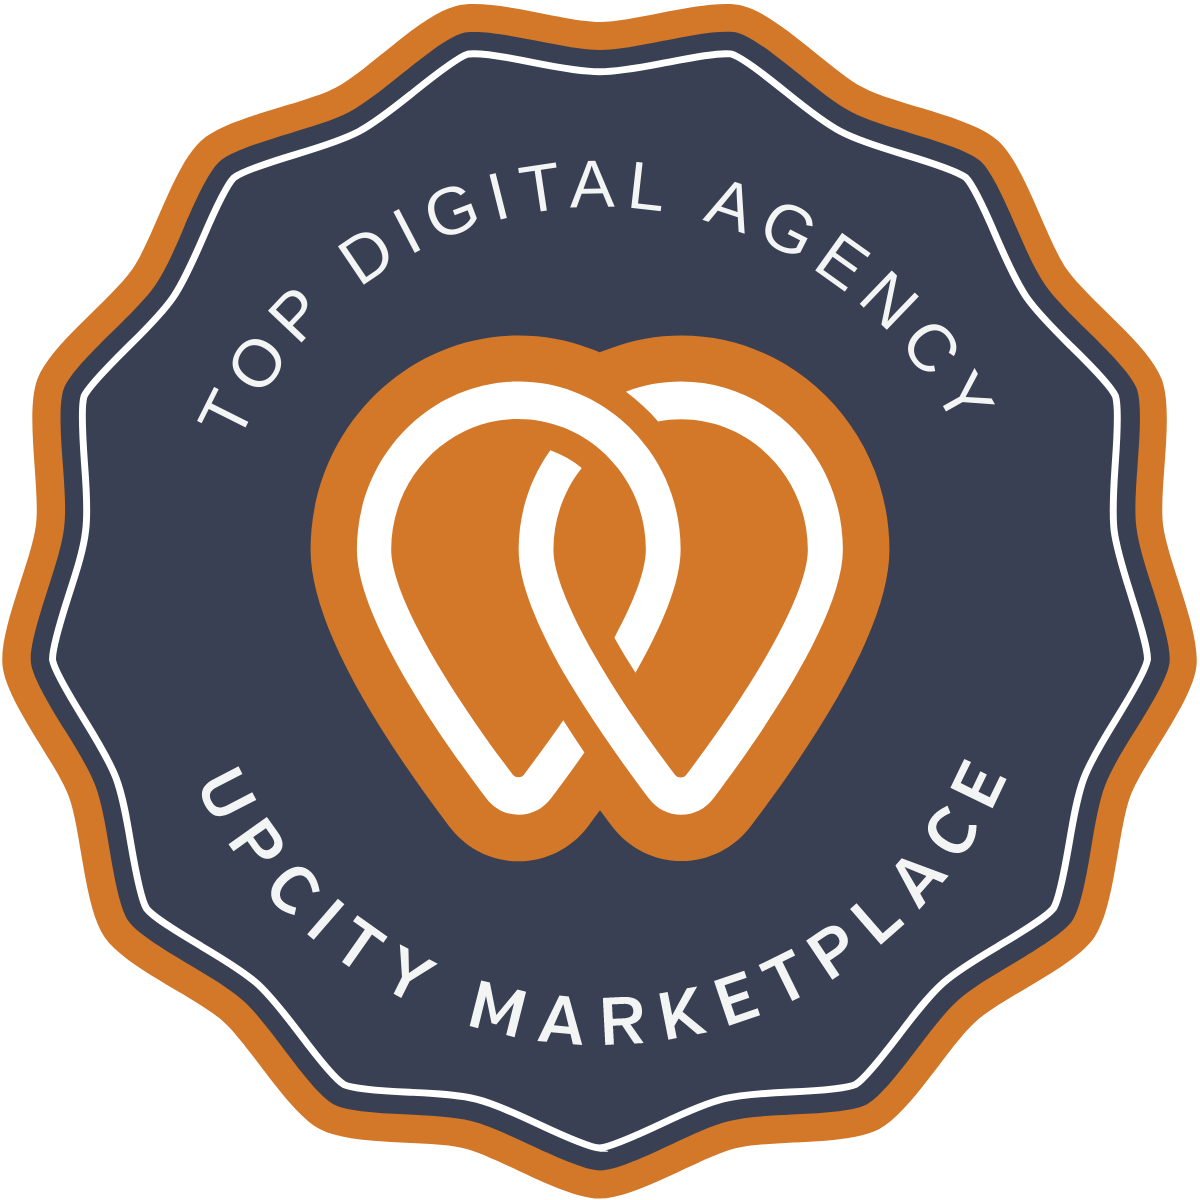 Upcity market place top digital agency logo